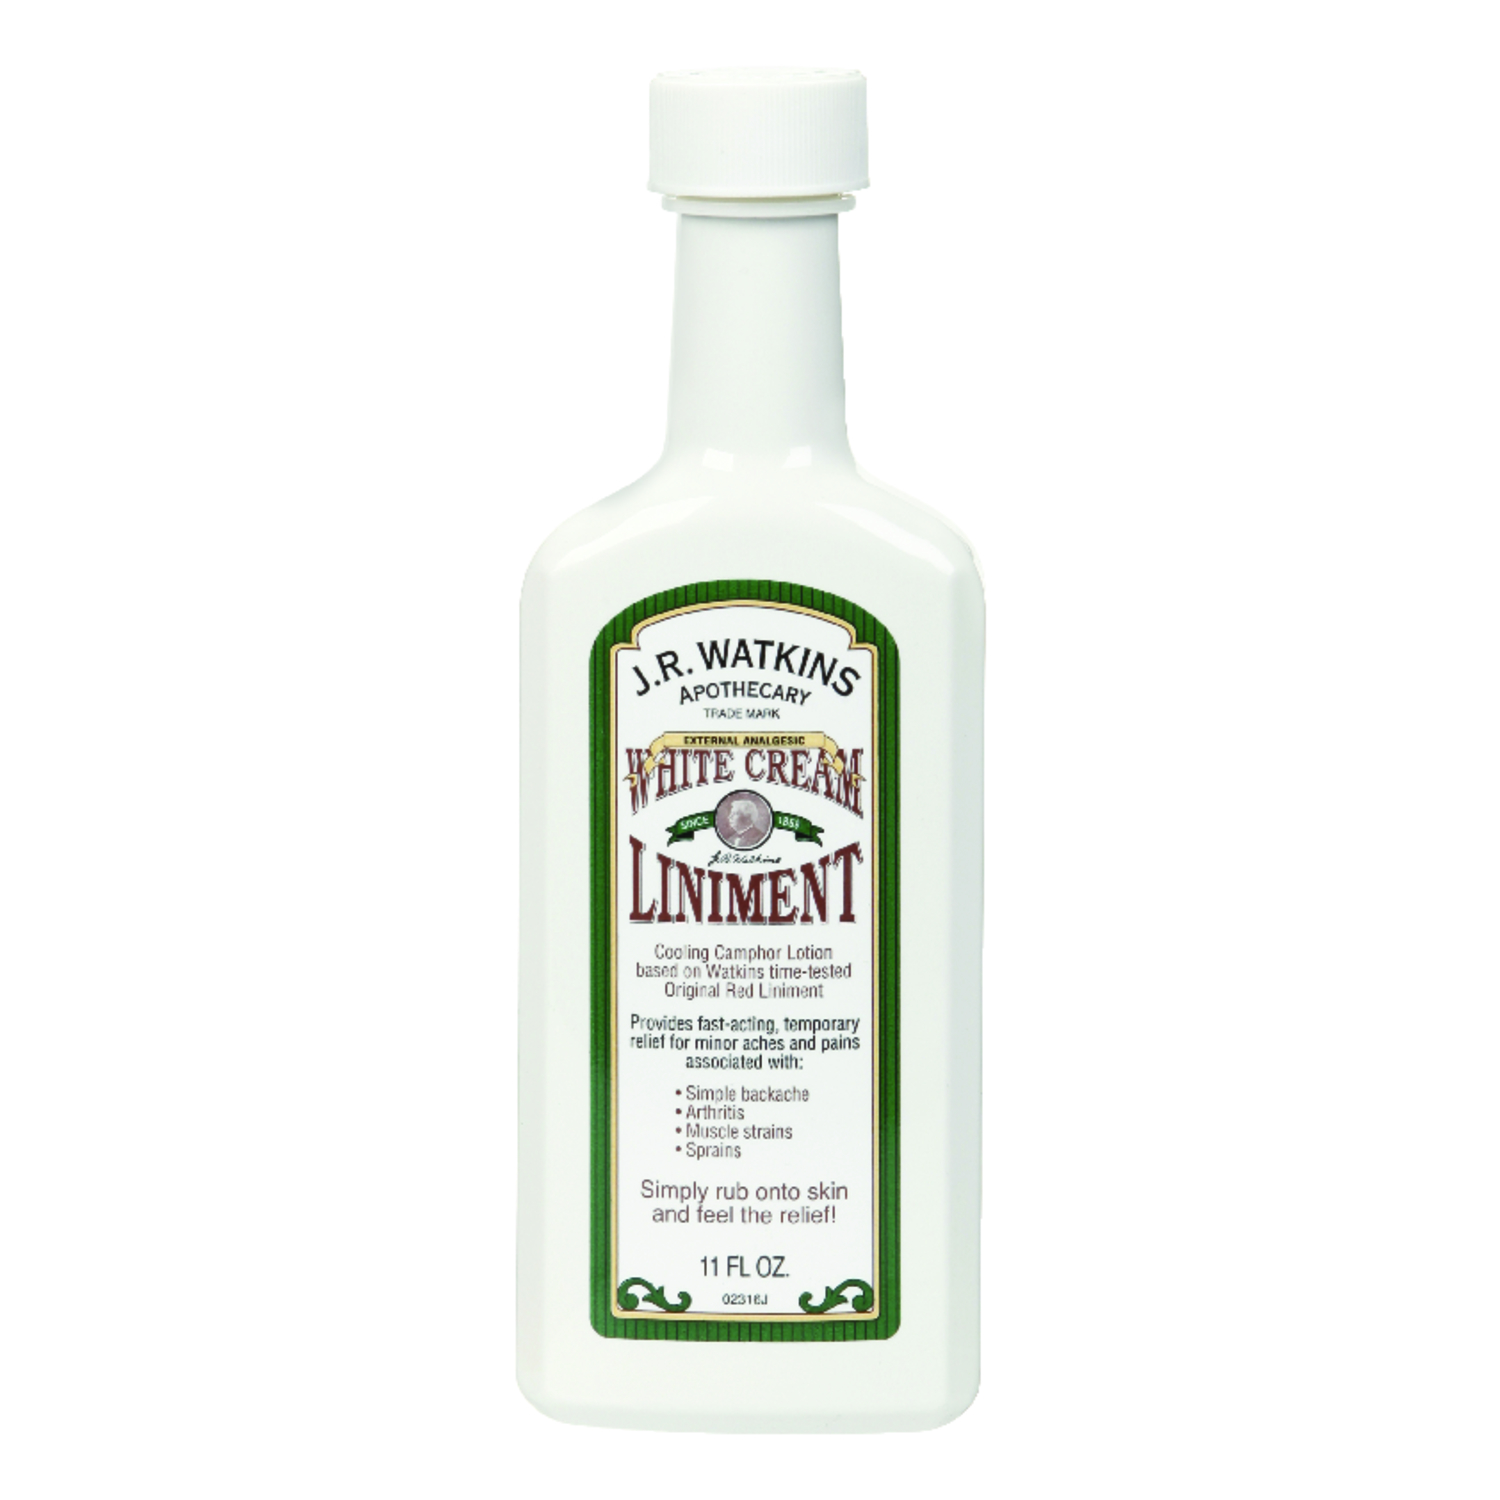 J.R. Watkins  White Cream Liniment  11 oz.